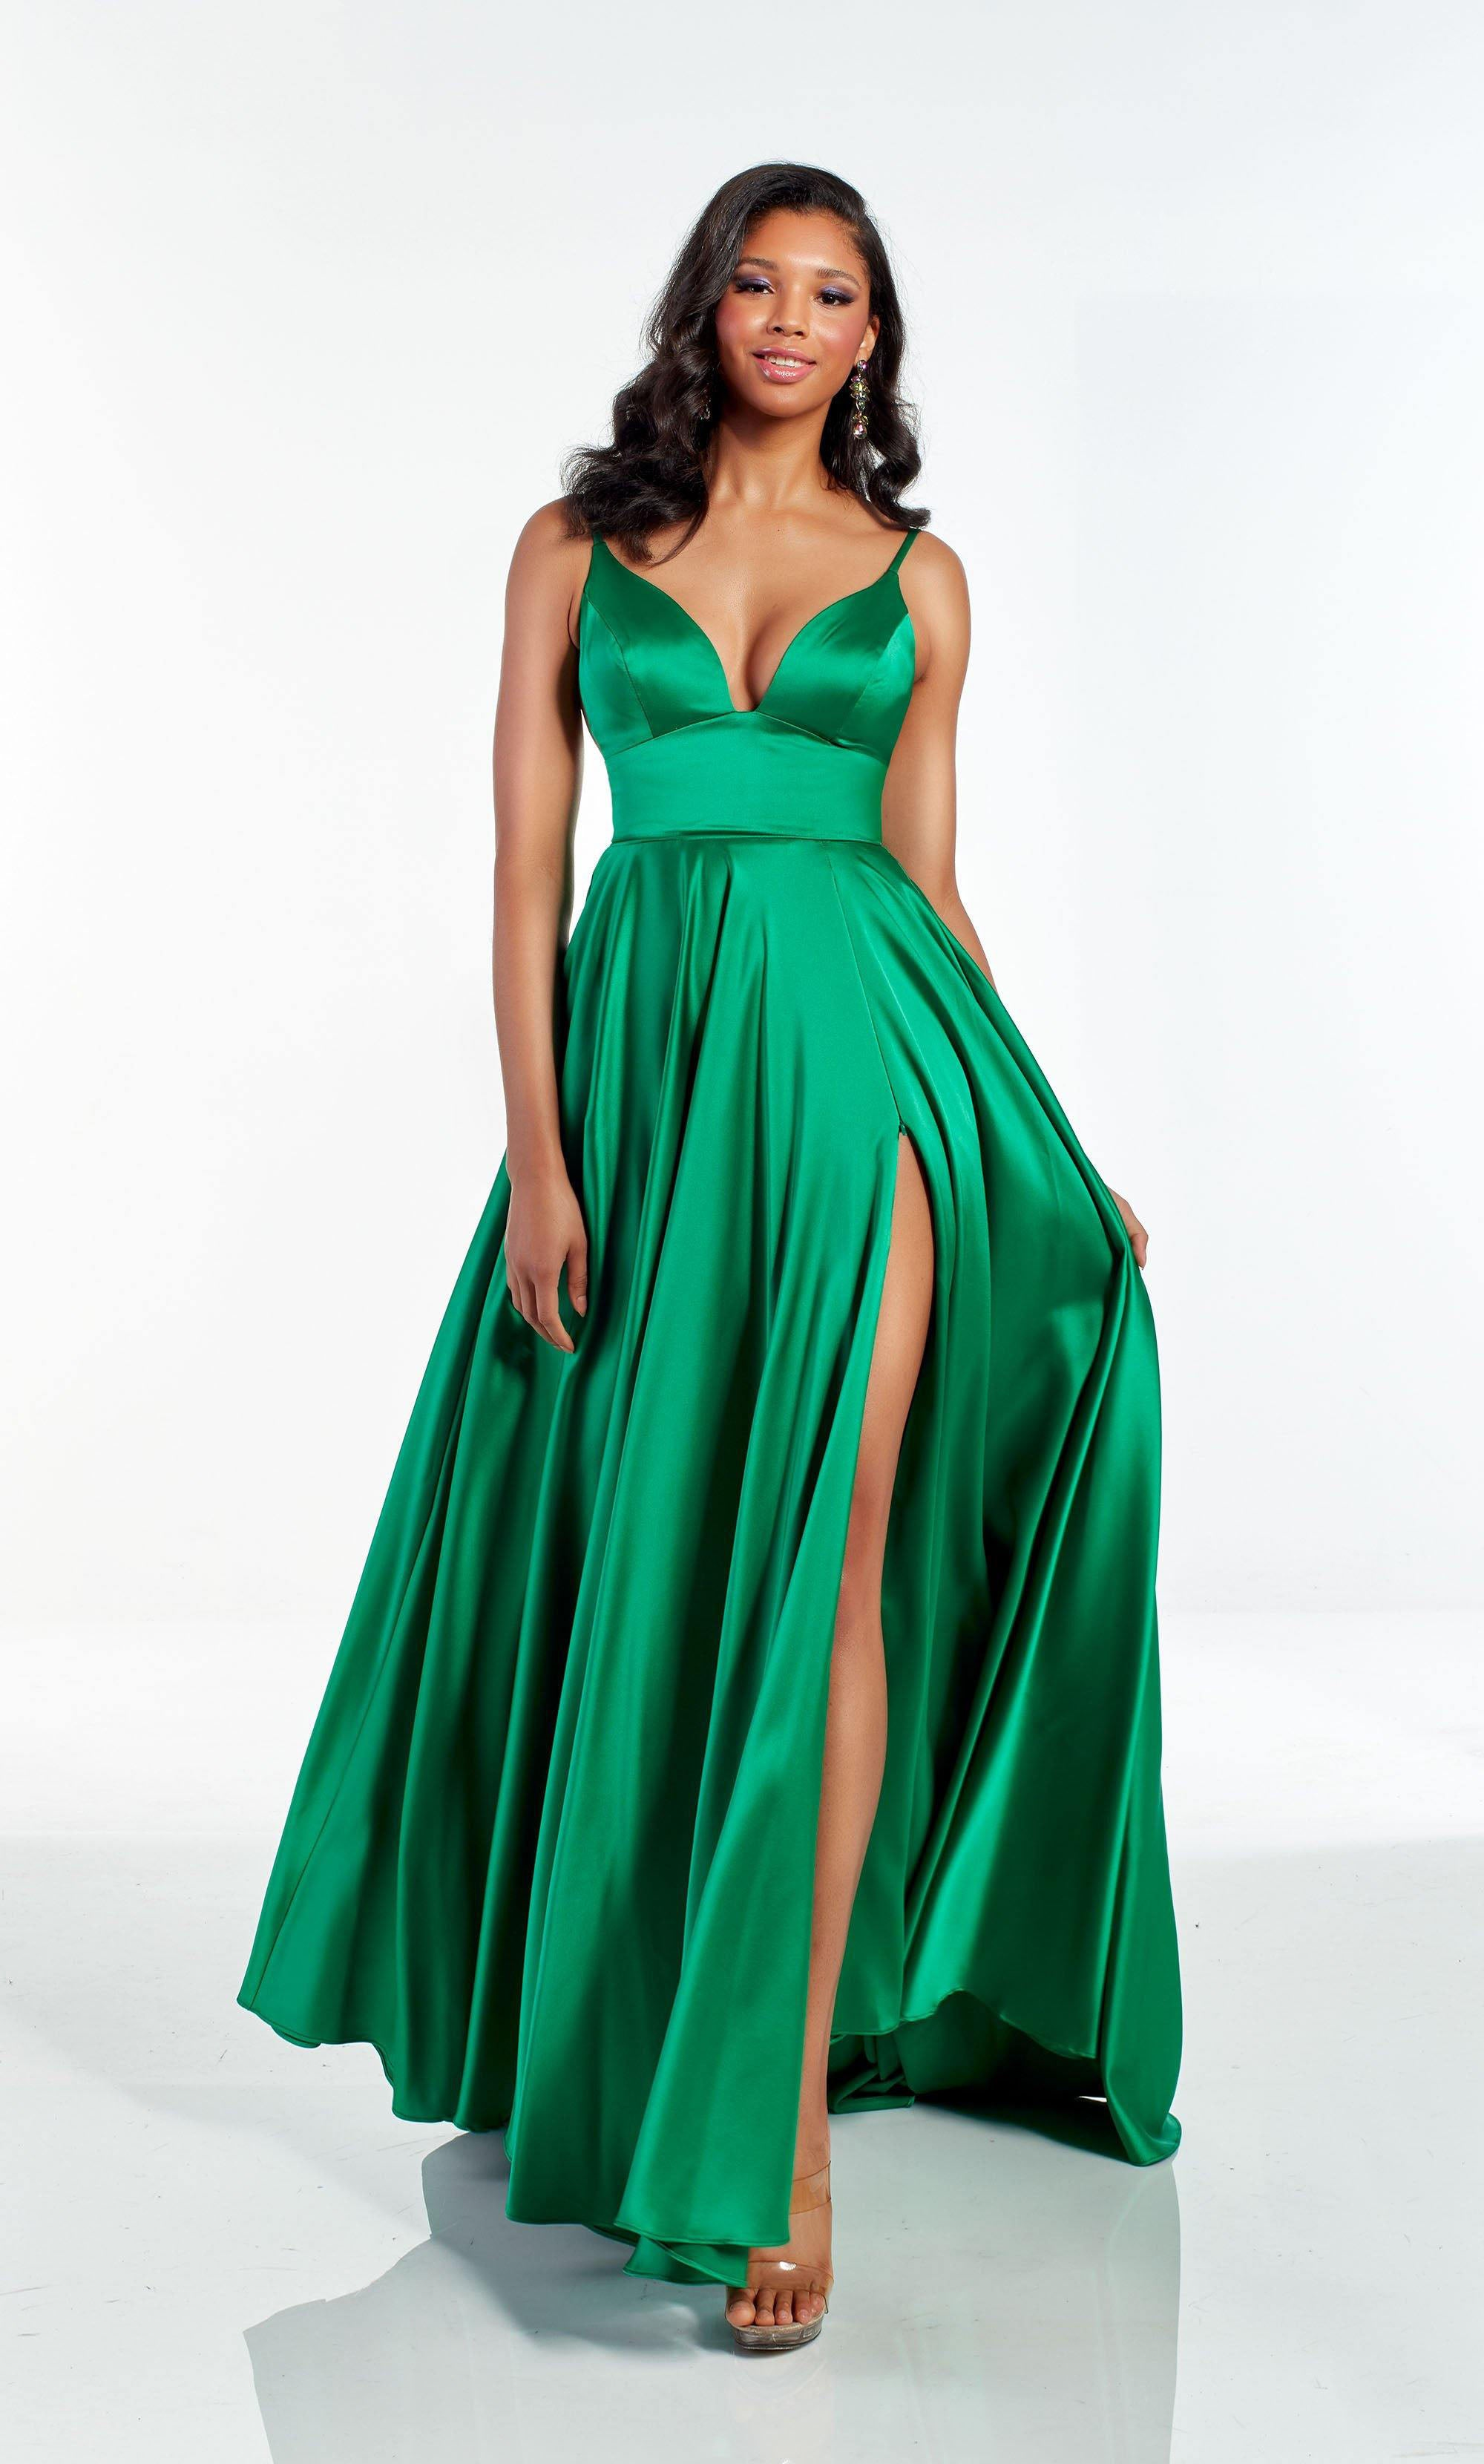 Emerald Green flowy luminous satin formal dress with a V shaped neckline and front slit